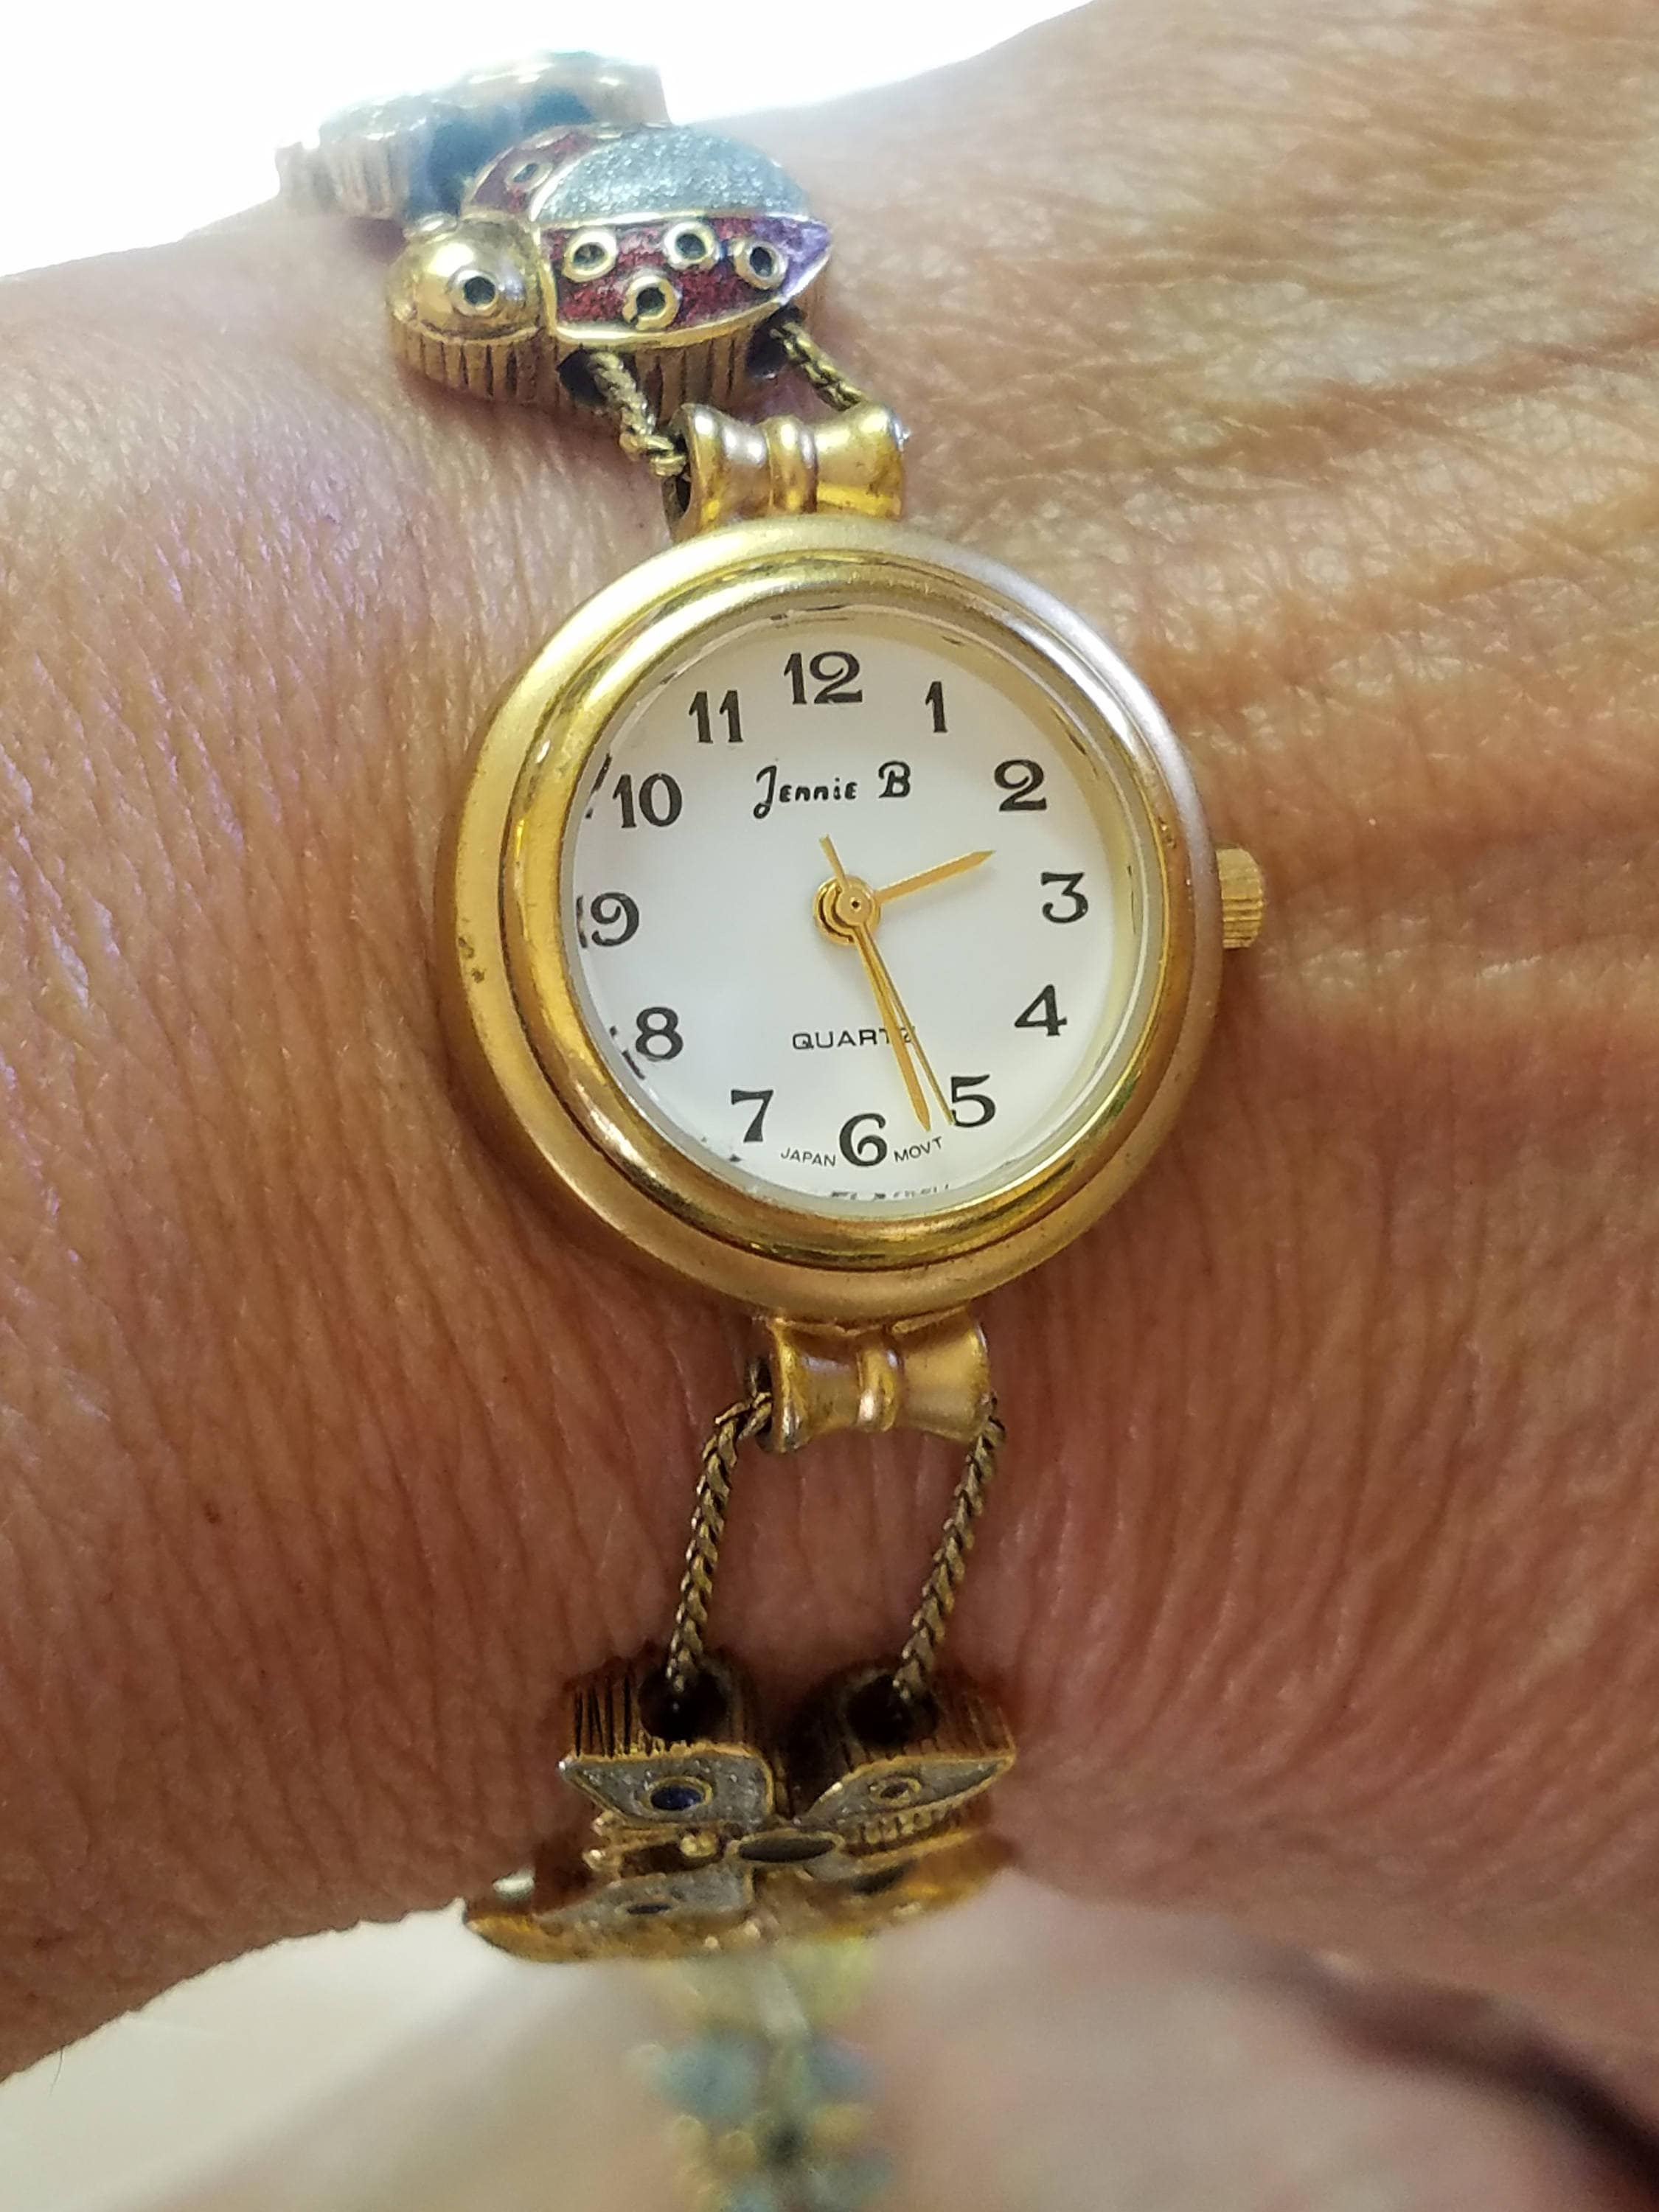 sliding bracelet vintage watches charms il watch avon listing link zoom for made jennie fullxfull b chain